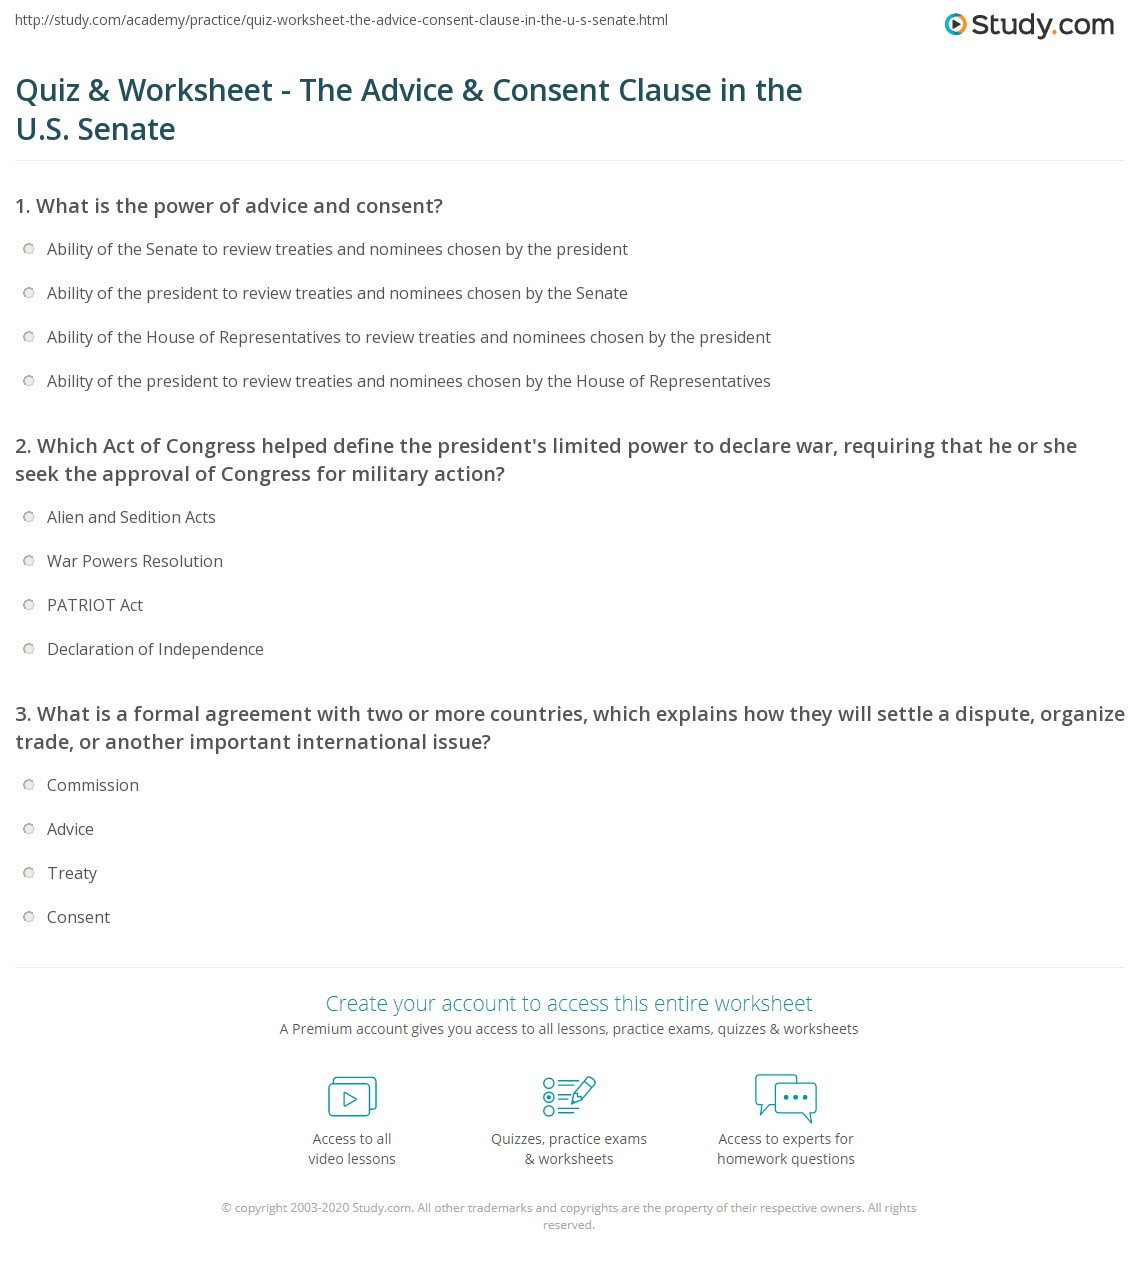 quiz worksheet the advice consent clause in the u s senate. Black Bedroom Furniture Sets. Home Design Ideas